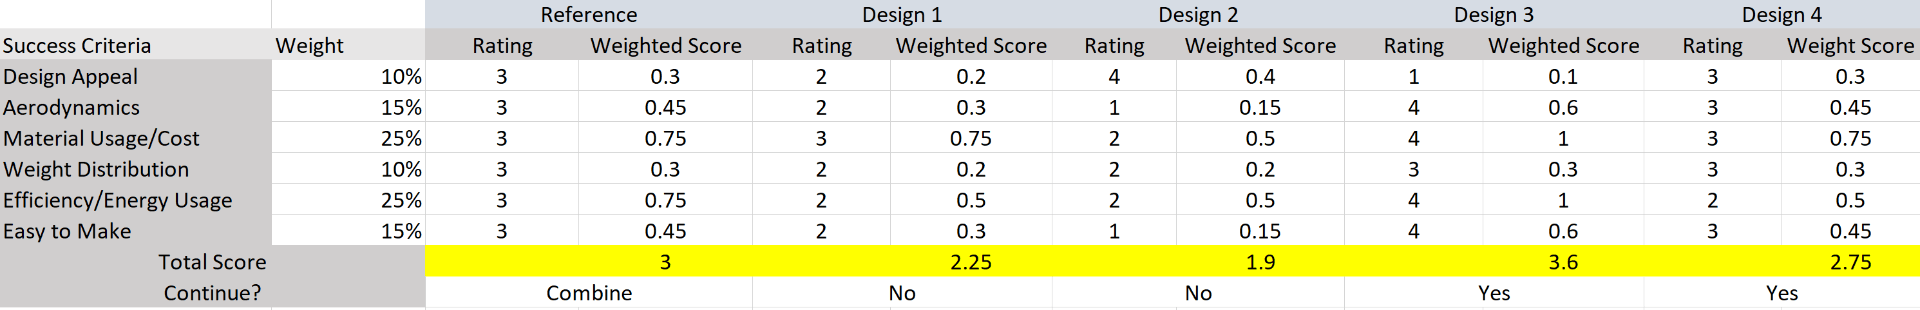 https://cpb-us-w2.wpmucdn.com/u.osu.edu/dist/7/72641/files/2019/01/Scoring-Table-s2i5lb.png